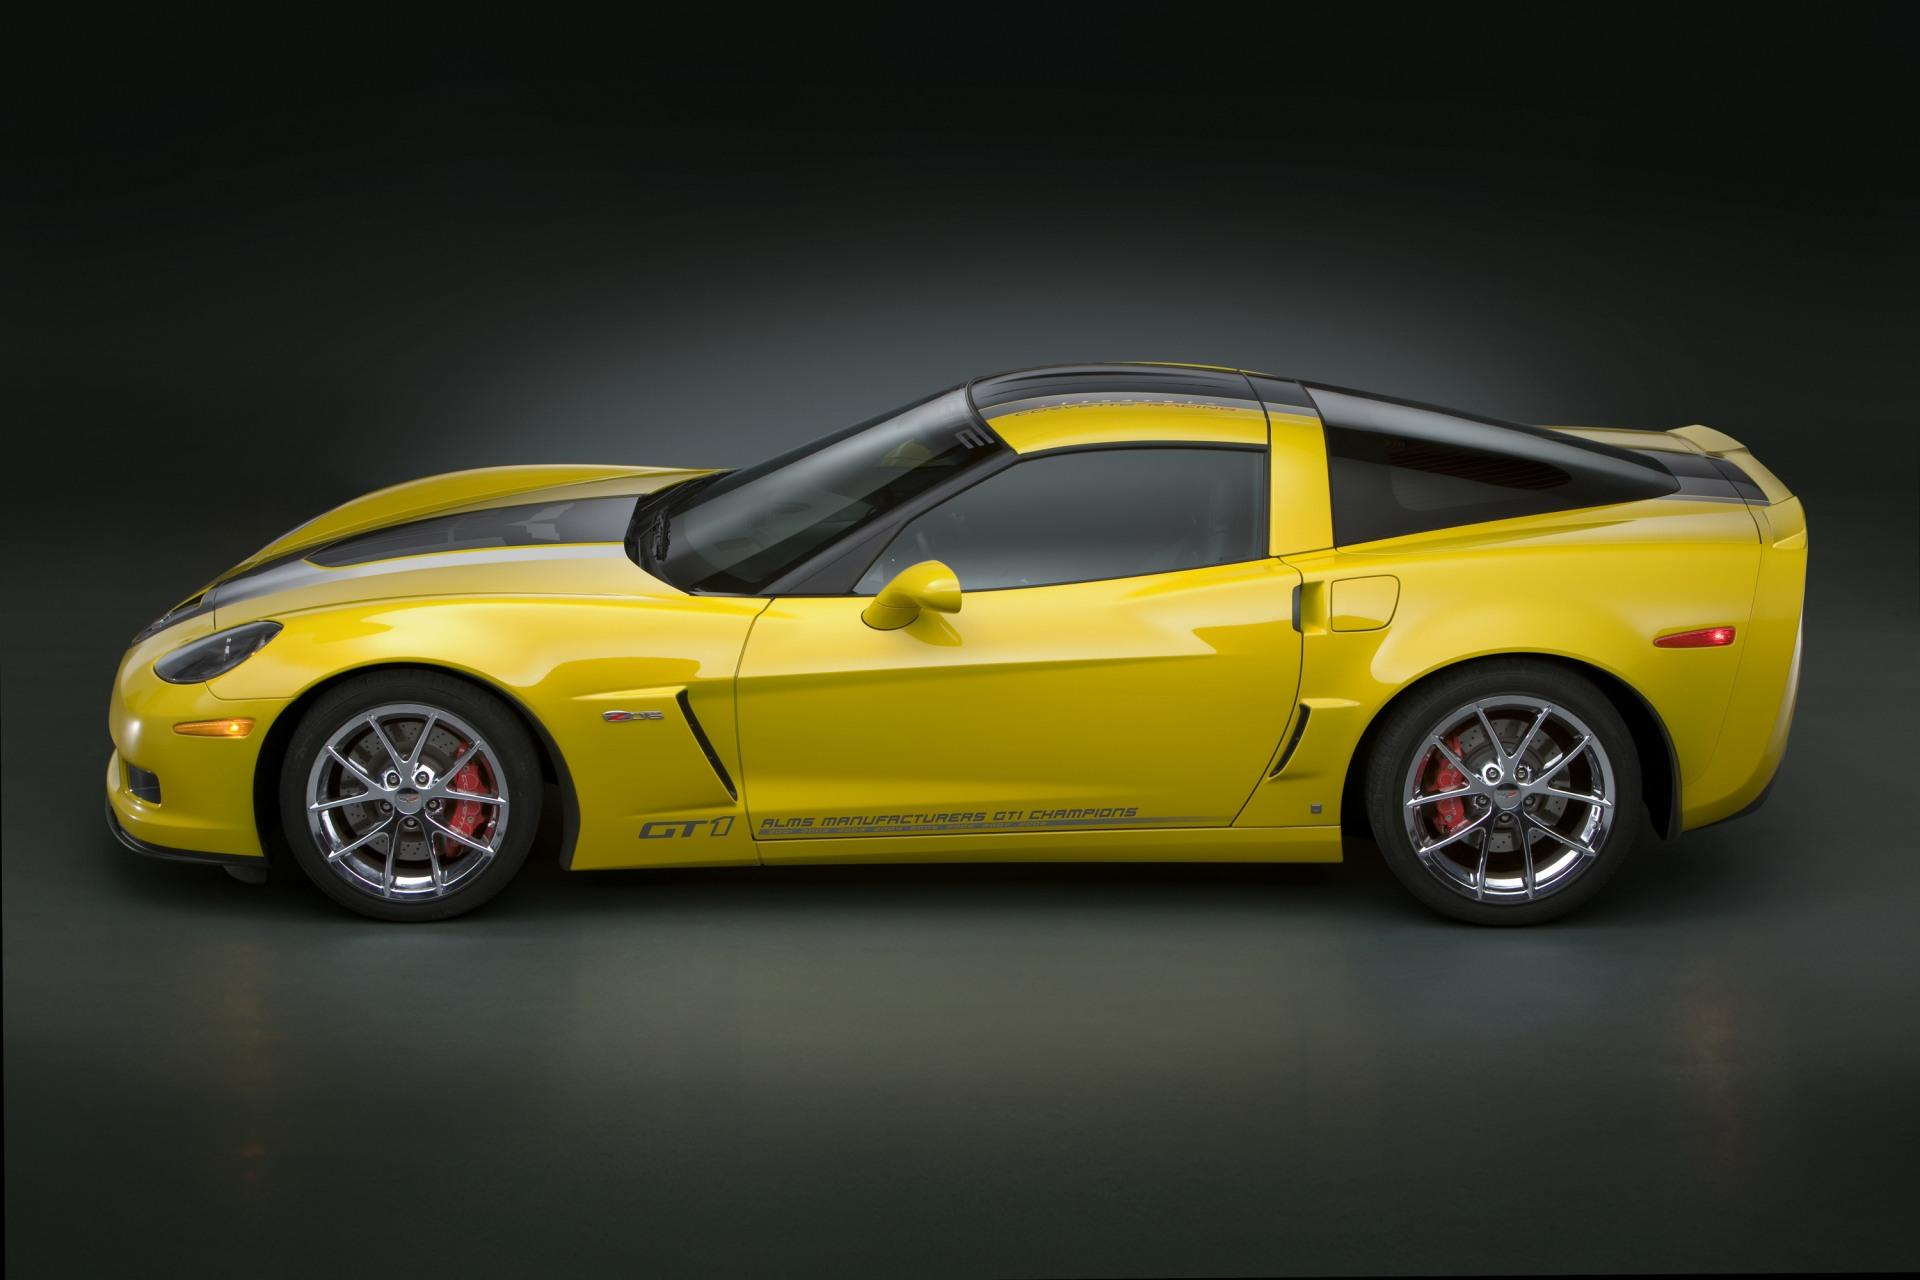 2009 chevrolet corvette gt1 championship edition news and. Black Bedroom Furniture Sets. Home Design Ideas